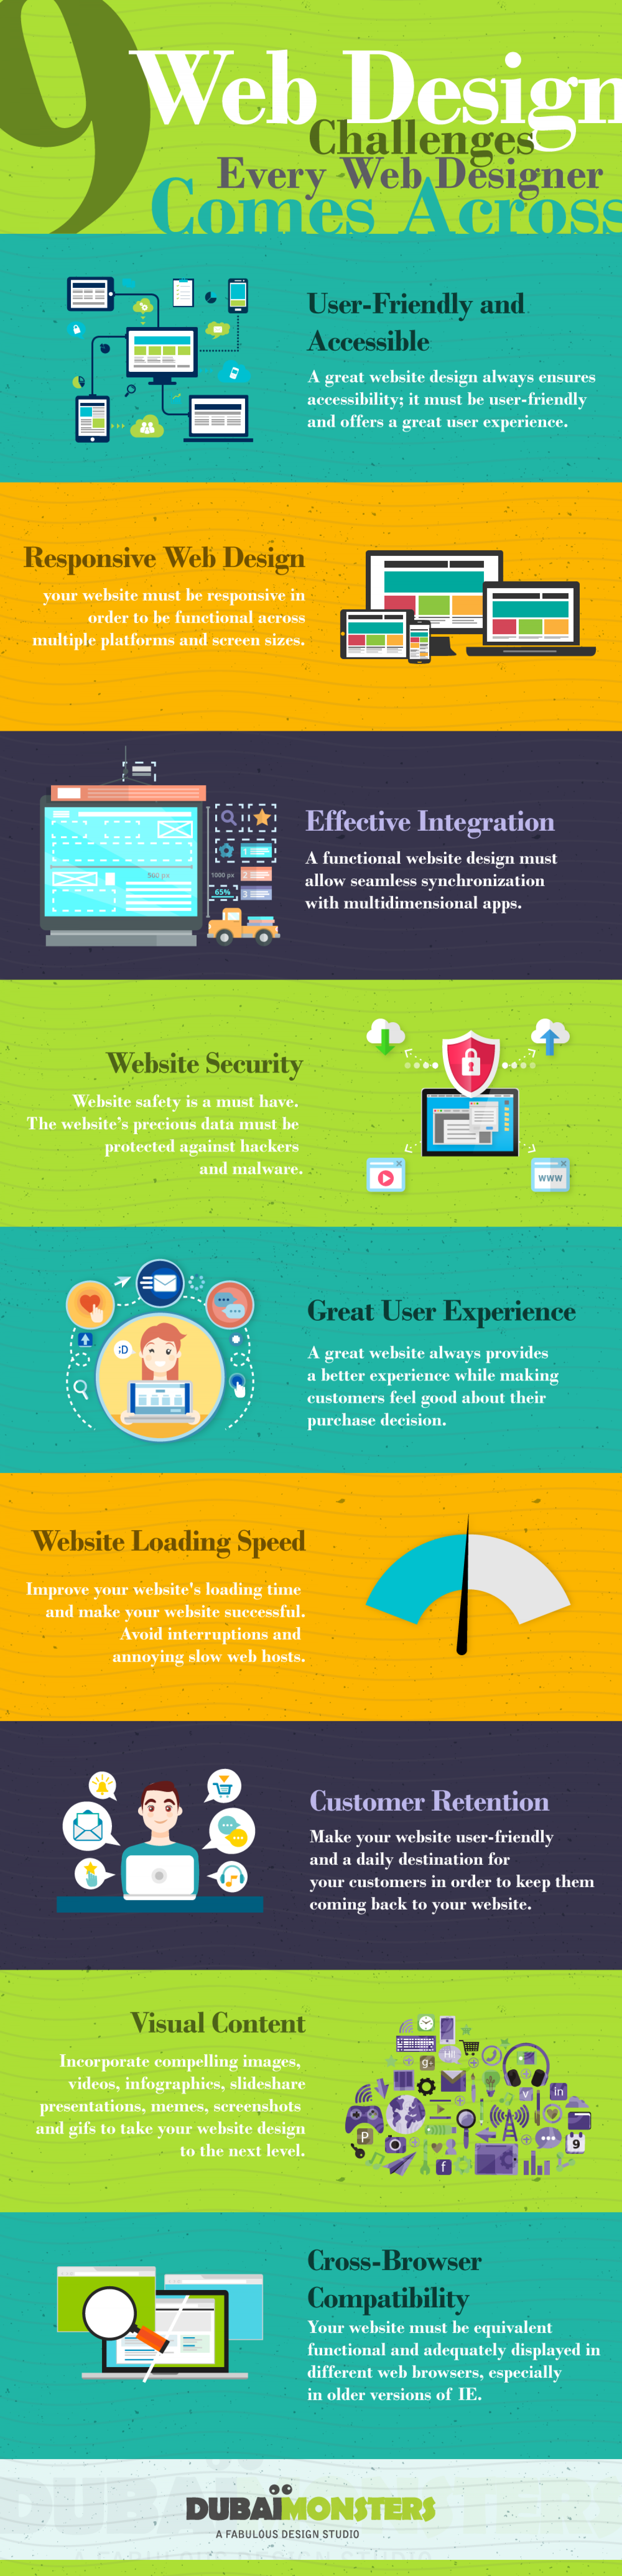 9 Web Design Challenges Every Web Designer Comes Across [Infographic] Infographic